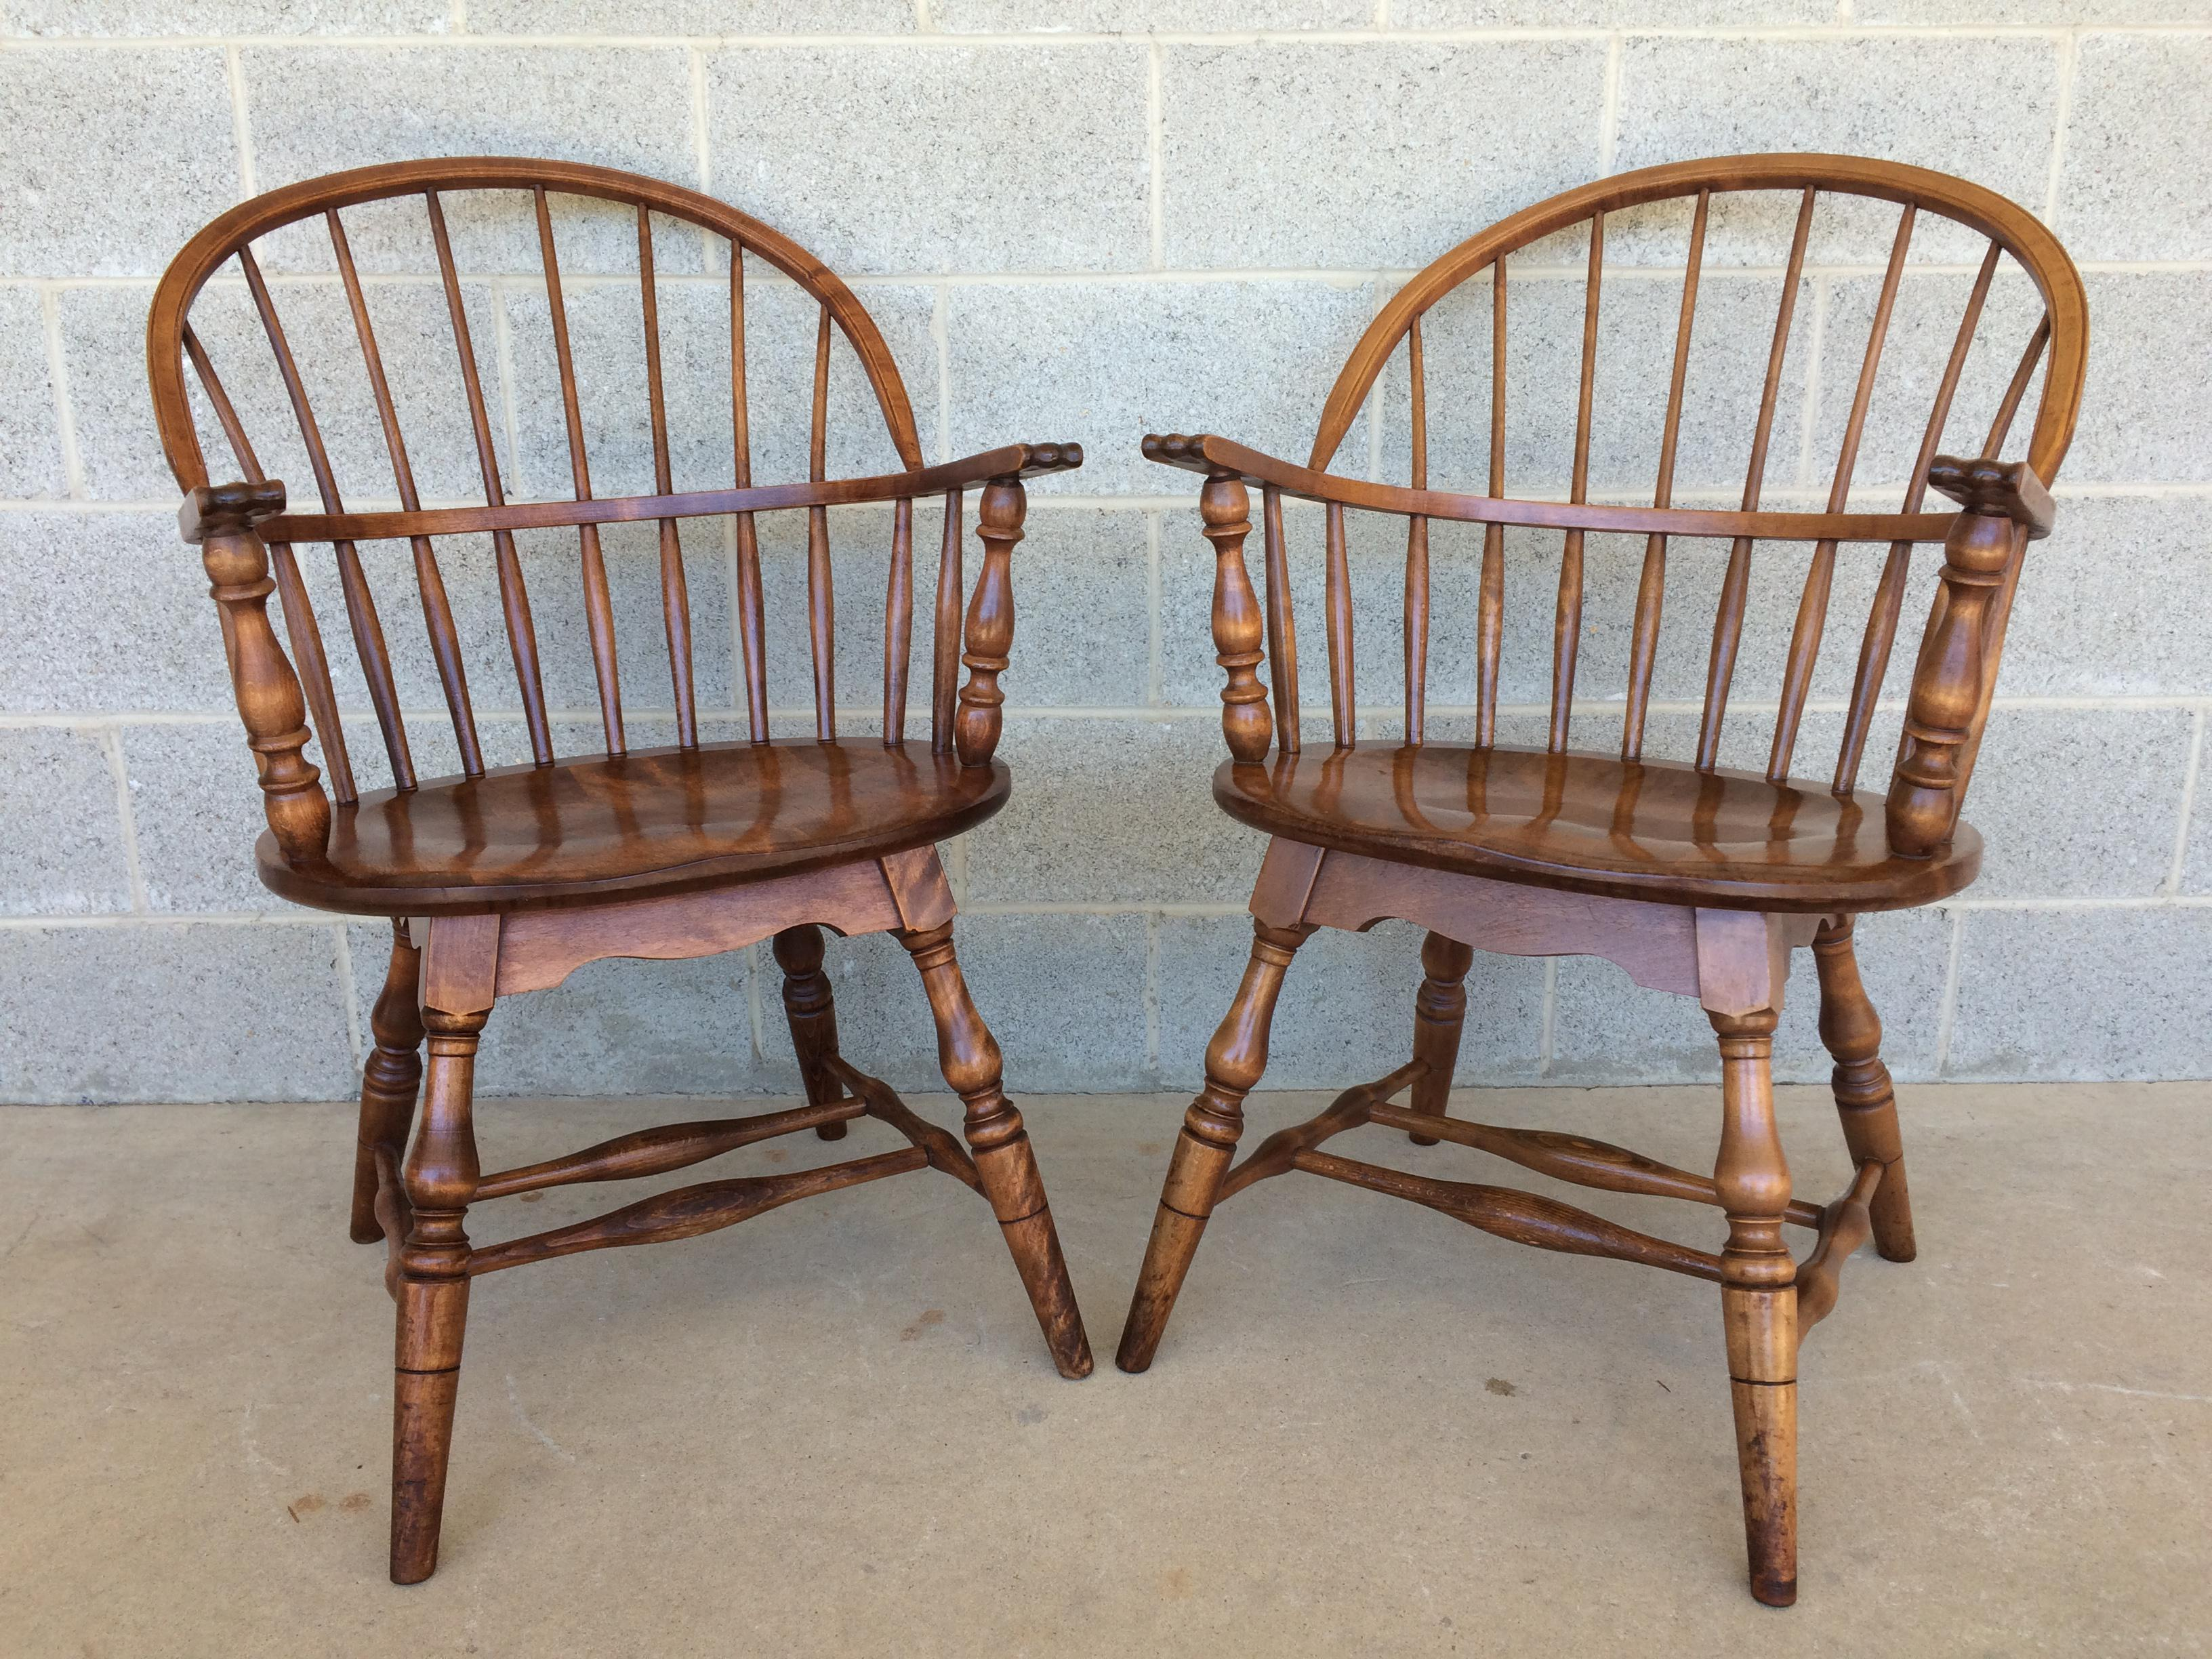 S. Bent Brothers Pair Of Hoop Back Windsor Arm Chairs Made Of Solid Walnut.